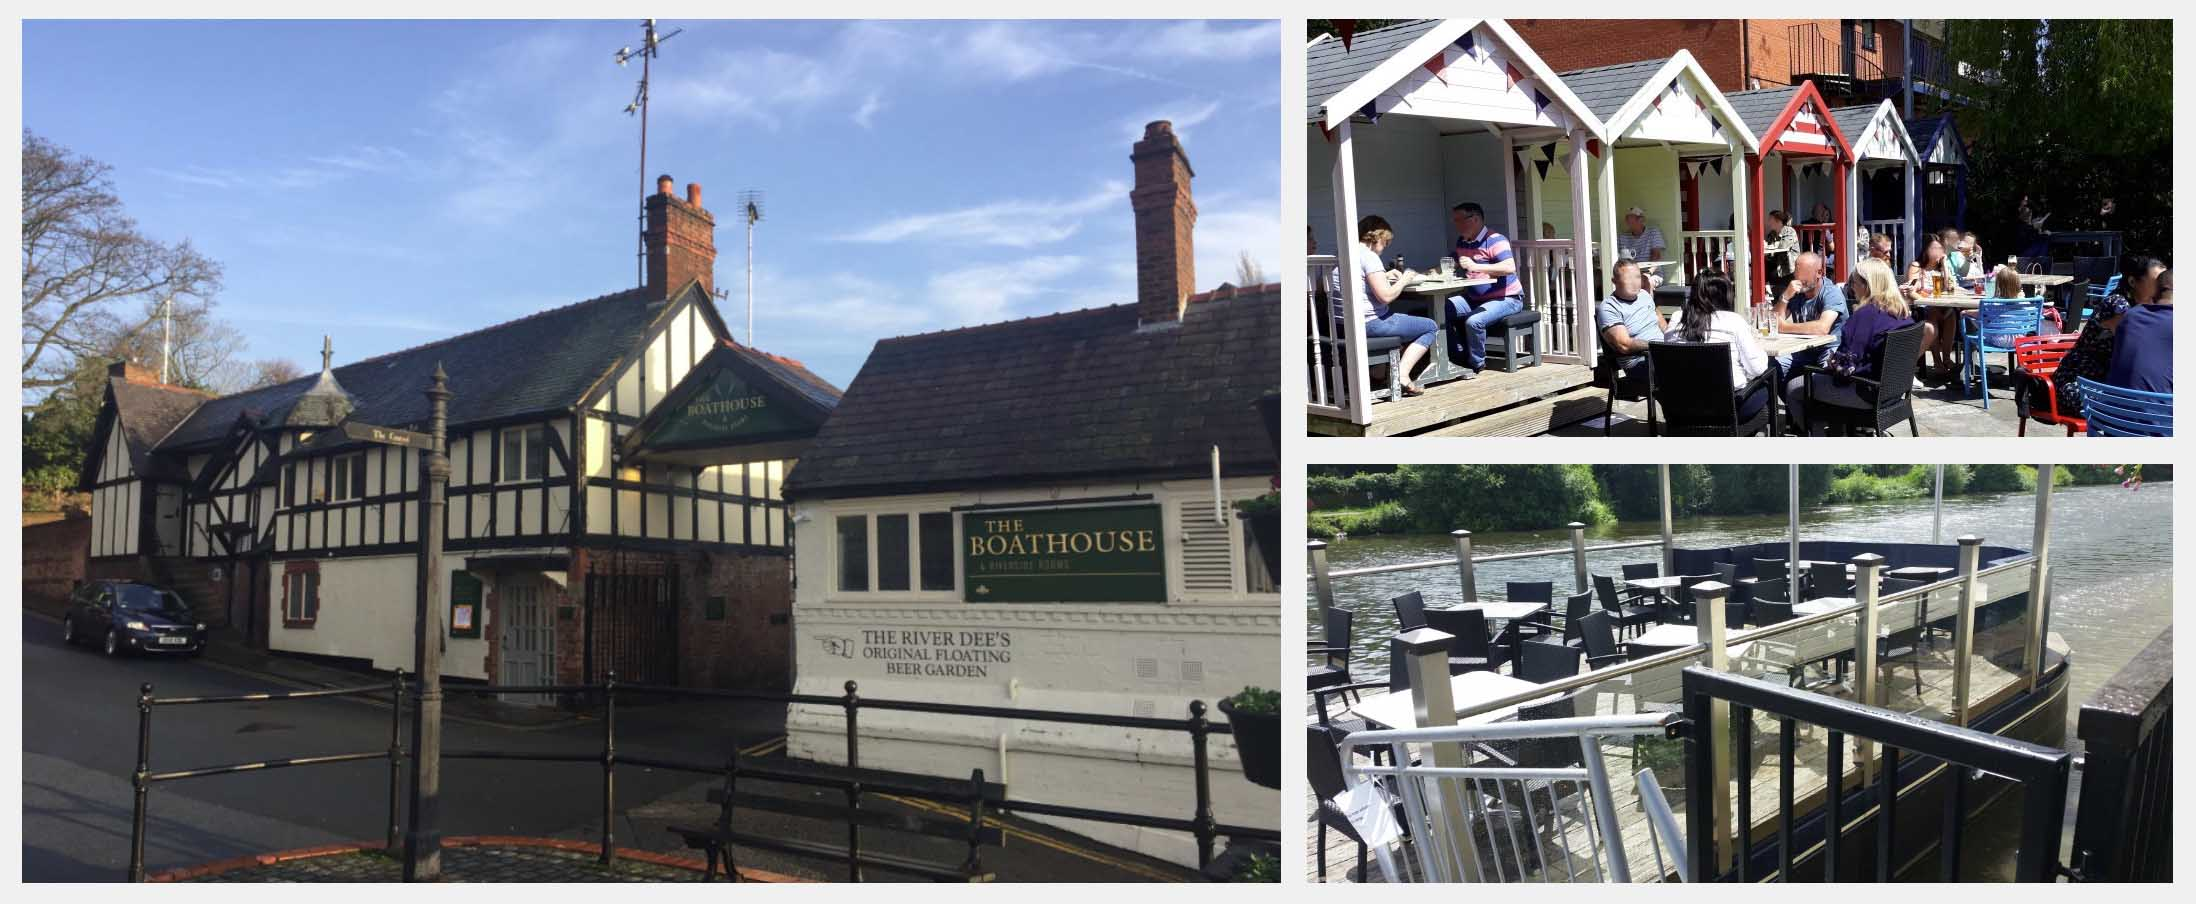 Best Beer Gardens in Chester - The Boathouse